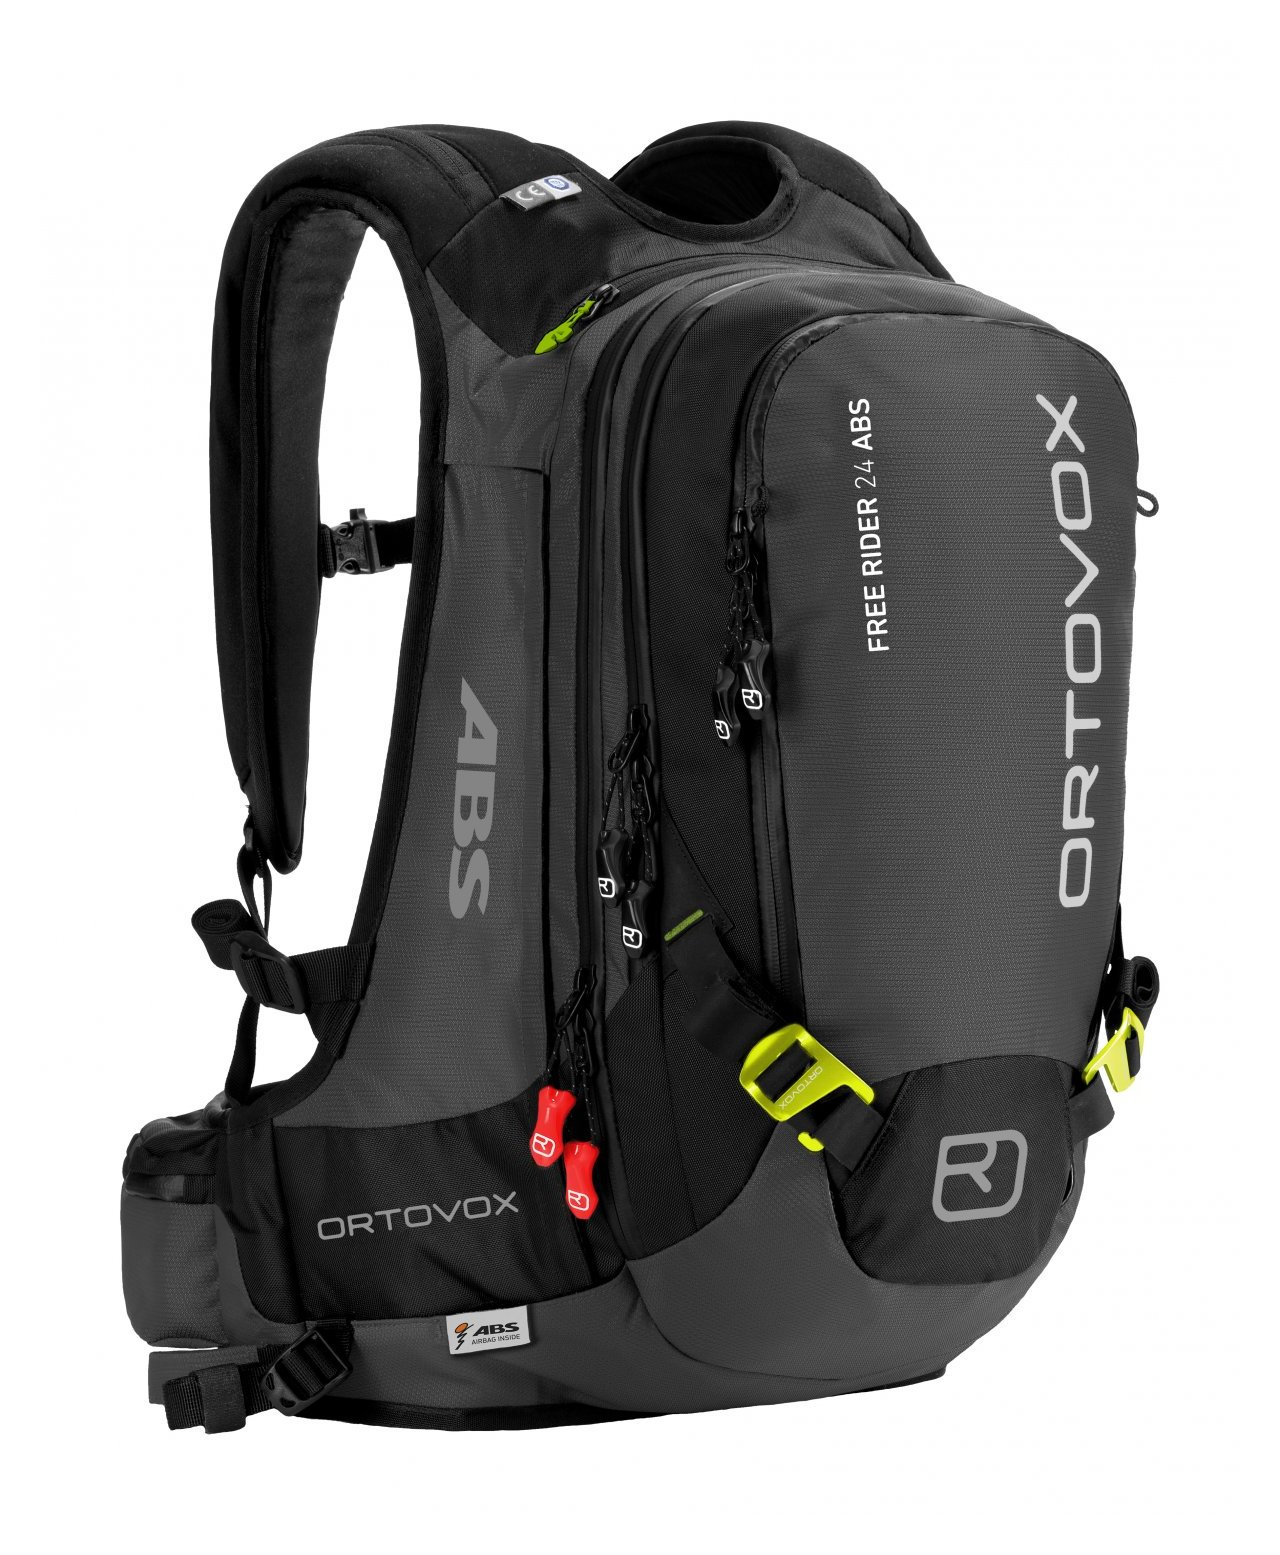 Ortovox Free Rider 24 Abs Backpack Revzilla